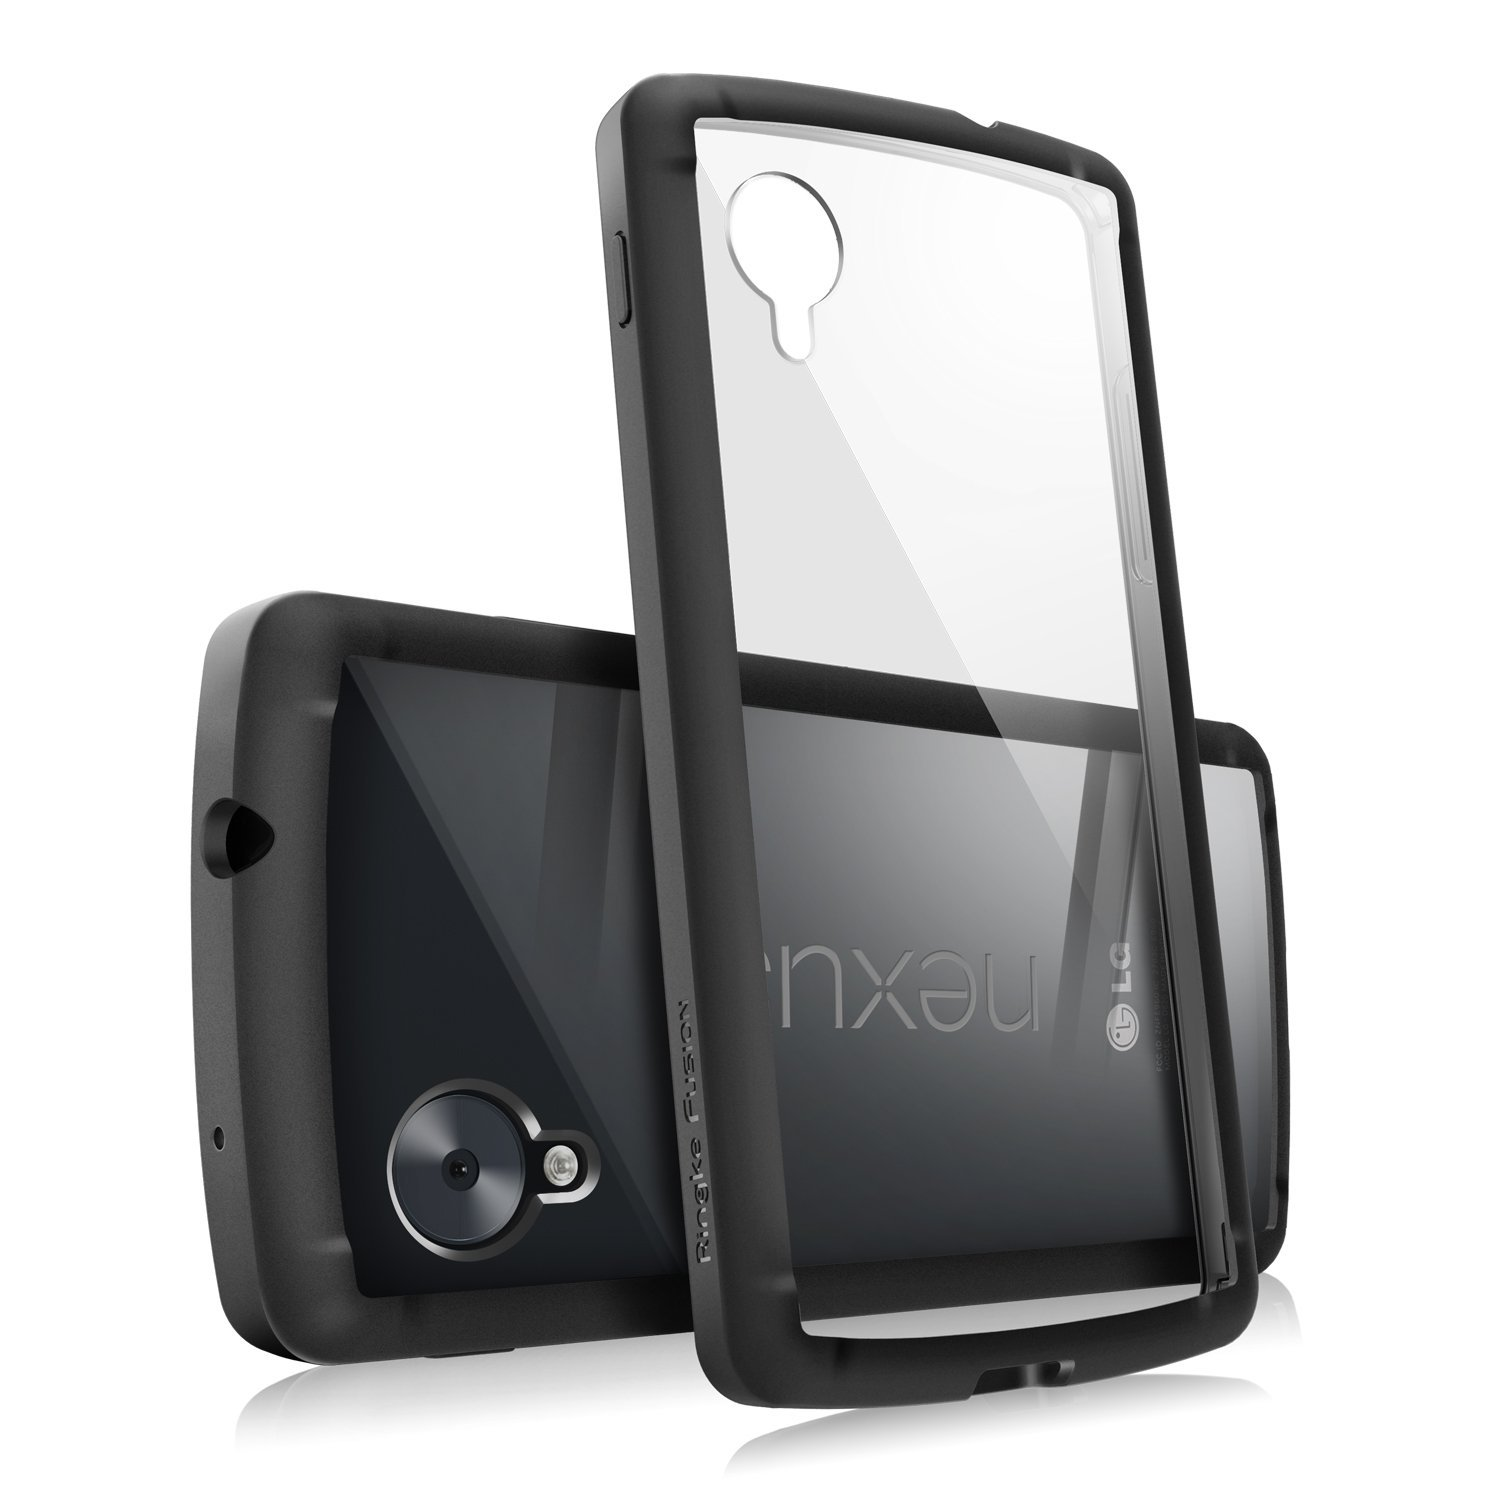 Amazon is selling this Ringke Fusion case for the purported Google Nexus 5 phone.